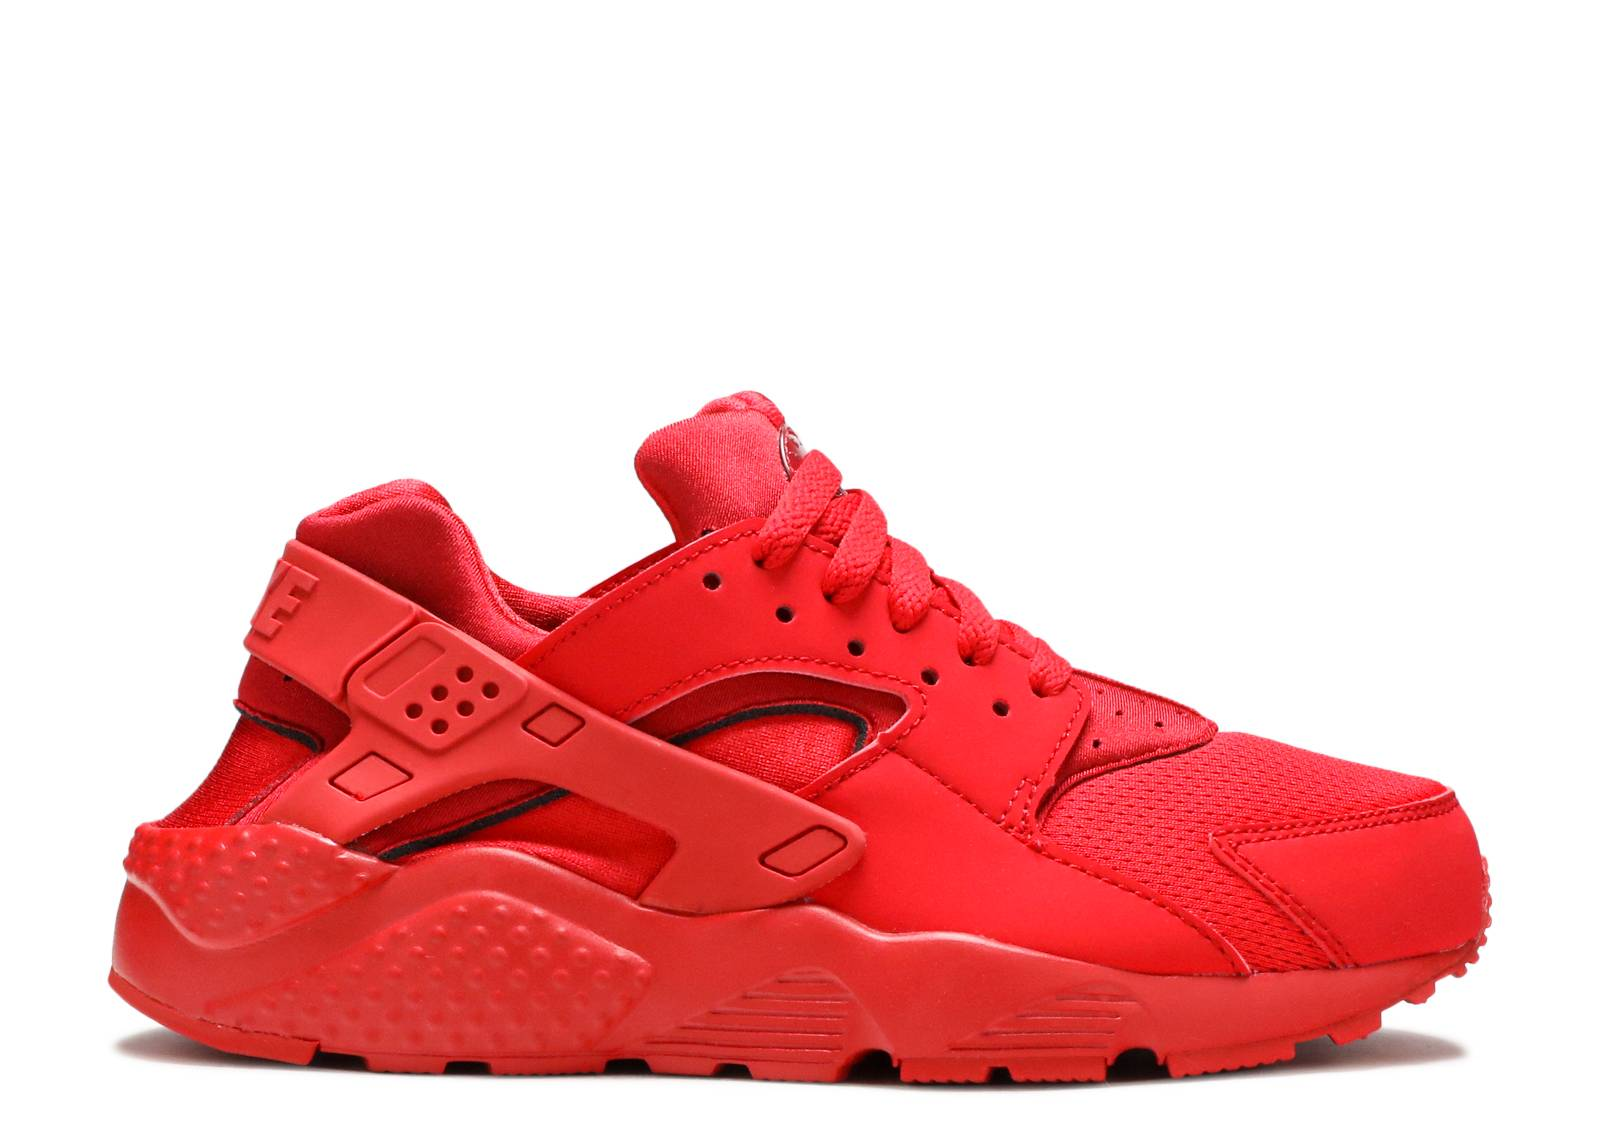 All Red Huarache Nike Shoes